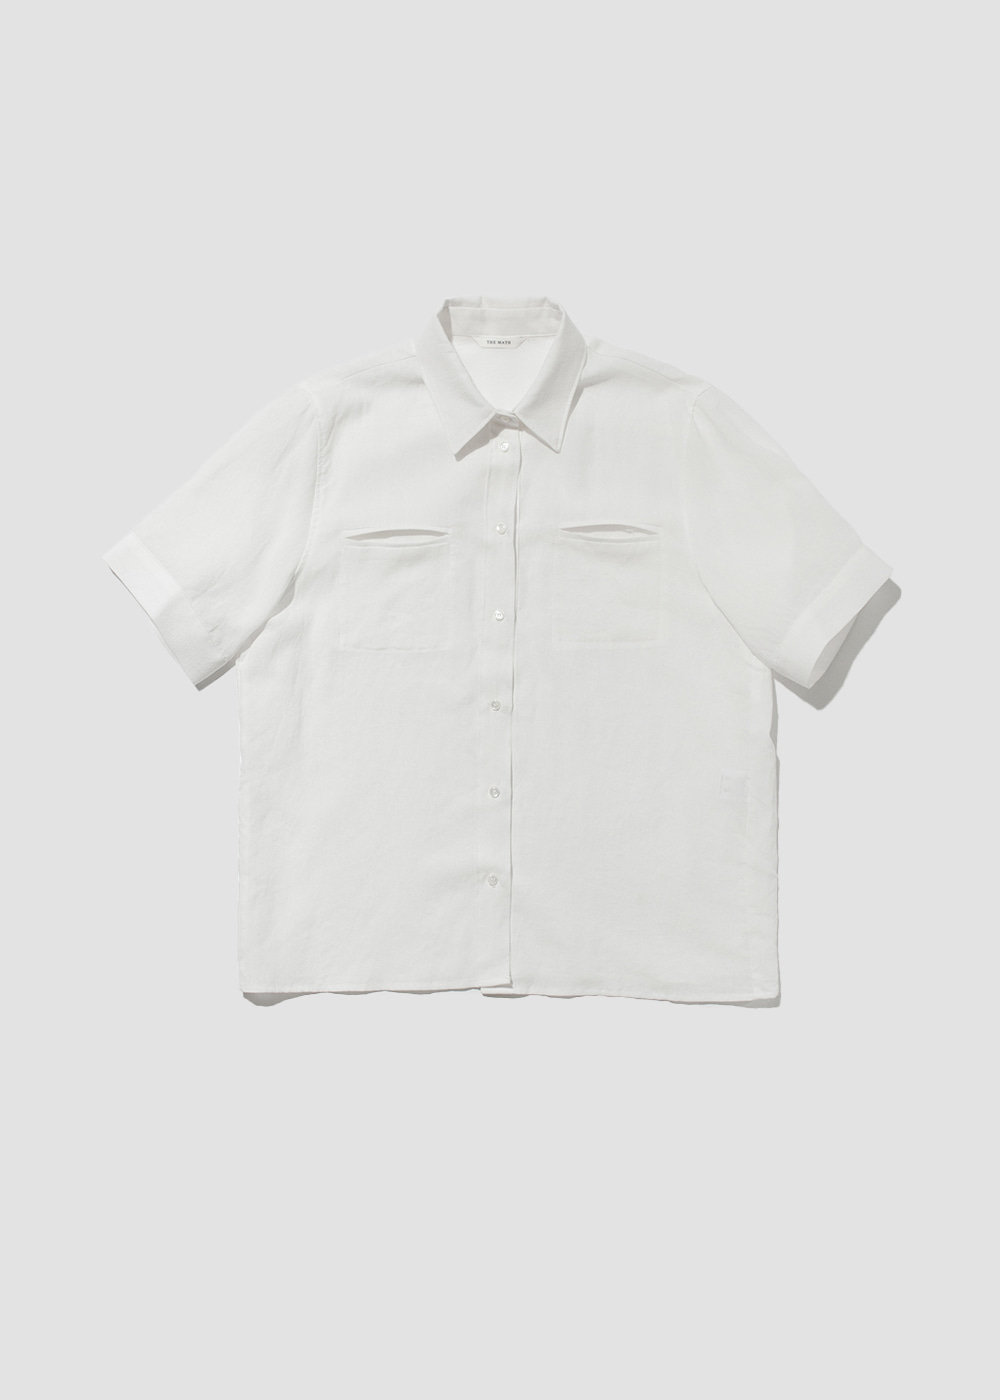 [THE MATH] Air linen shirt